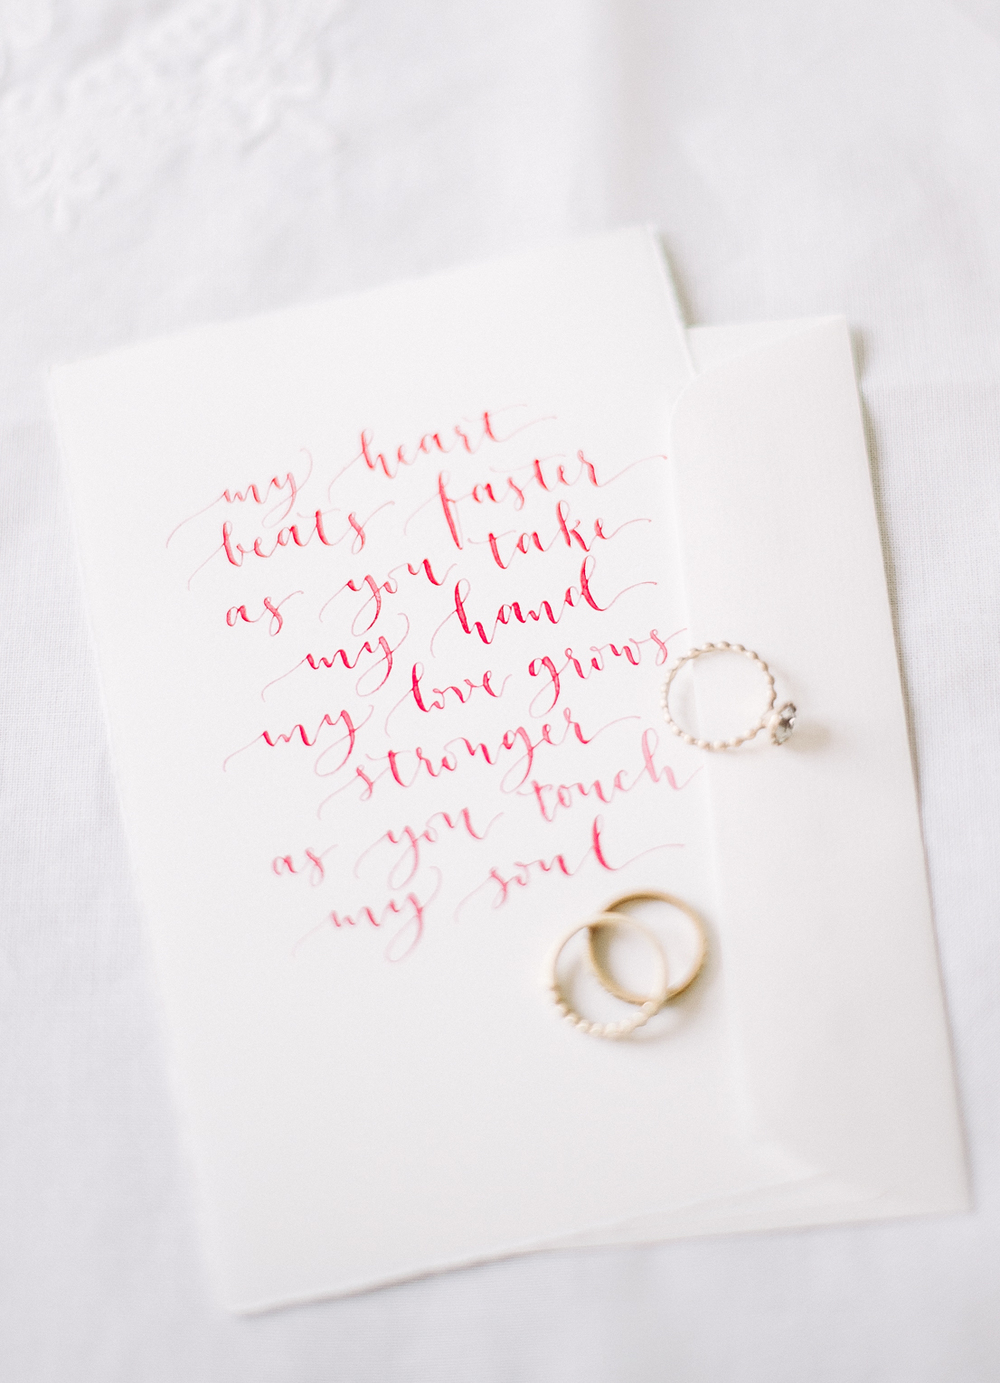 Calligraphy poem in red by A Creative Affair